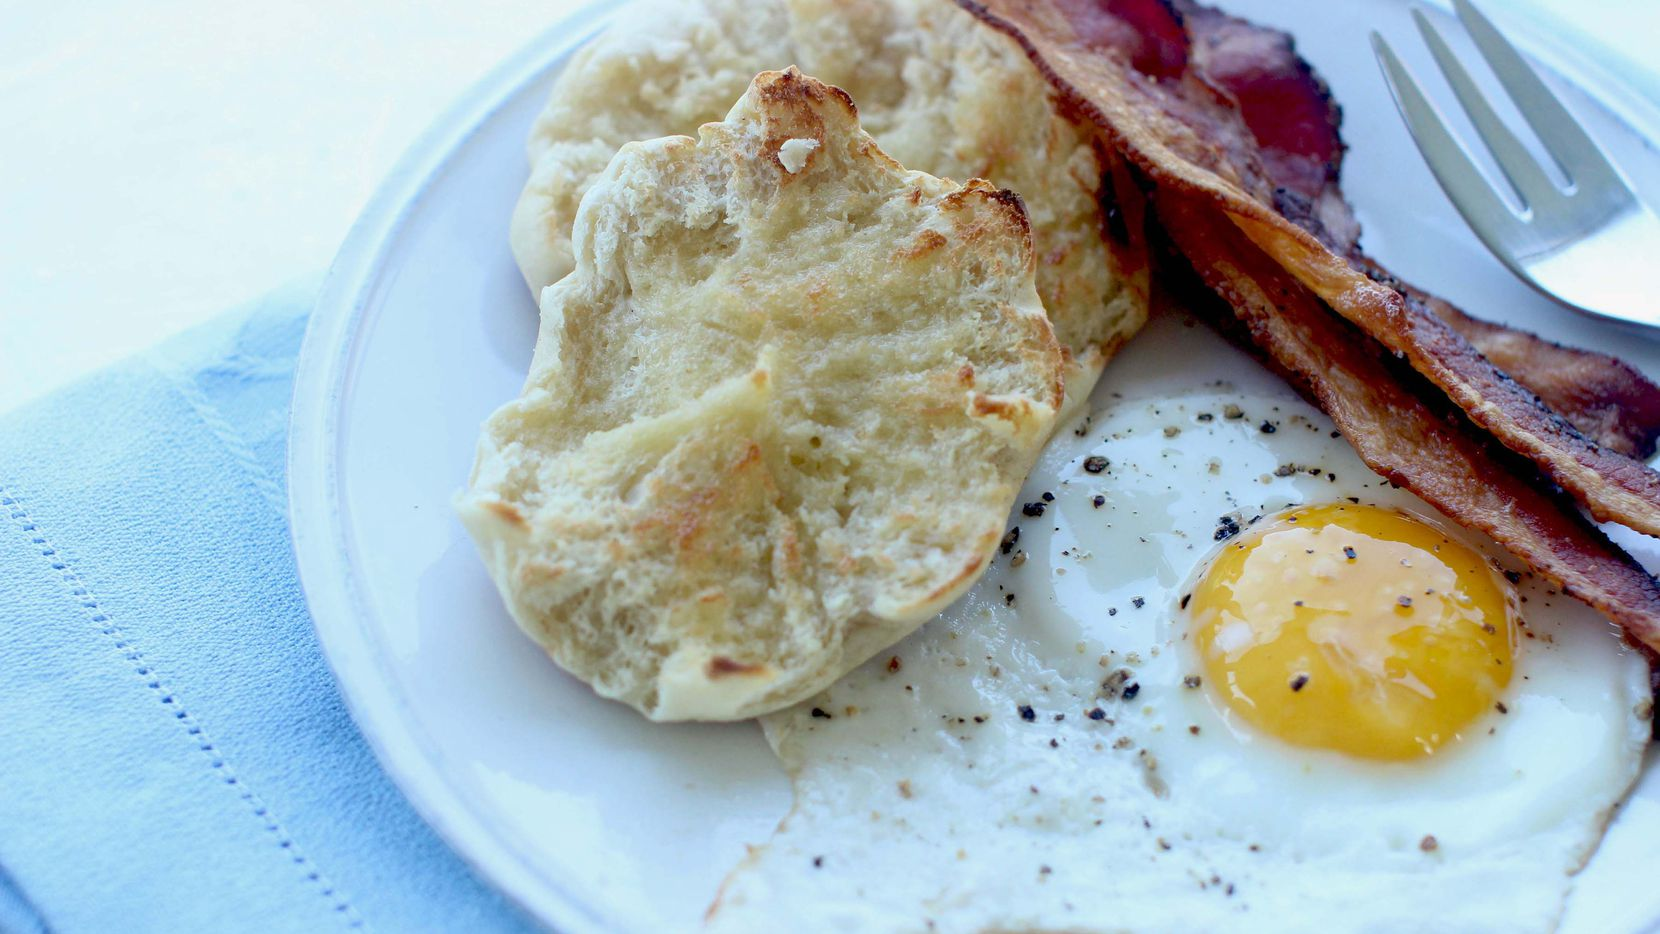 This Aug. 3, 2015 photo shows English muffins with eggs and bacon in Concord, N.H. (AP Photo/Matthew Mead)